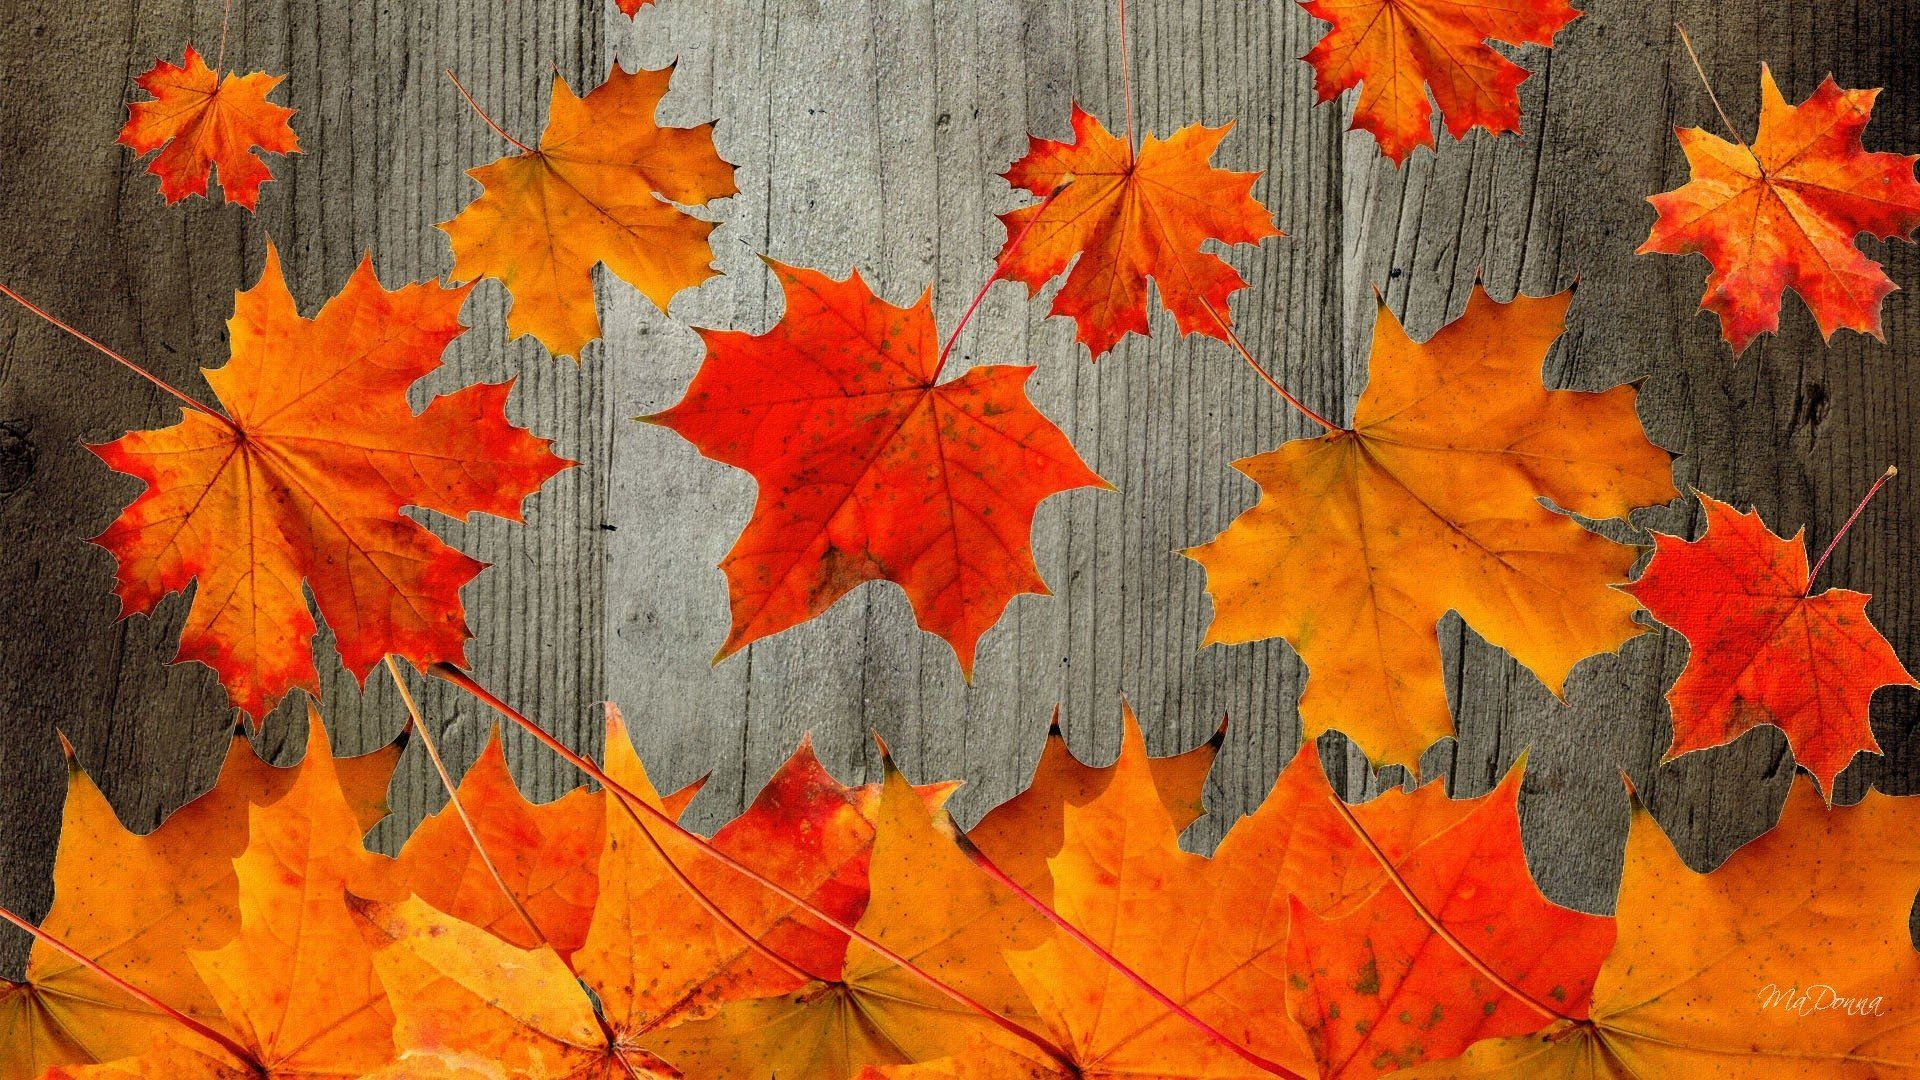 Fall Desktop Wallpapers   Top Fall Desktop Backgrounds 1920x1080